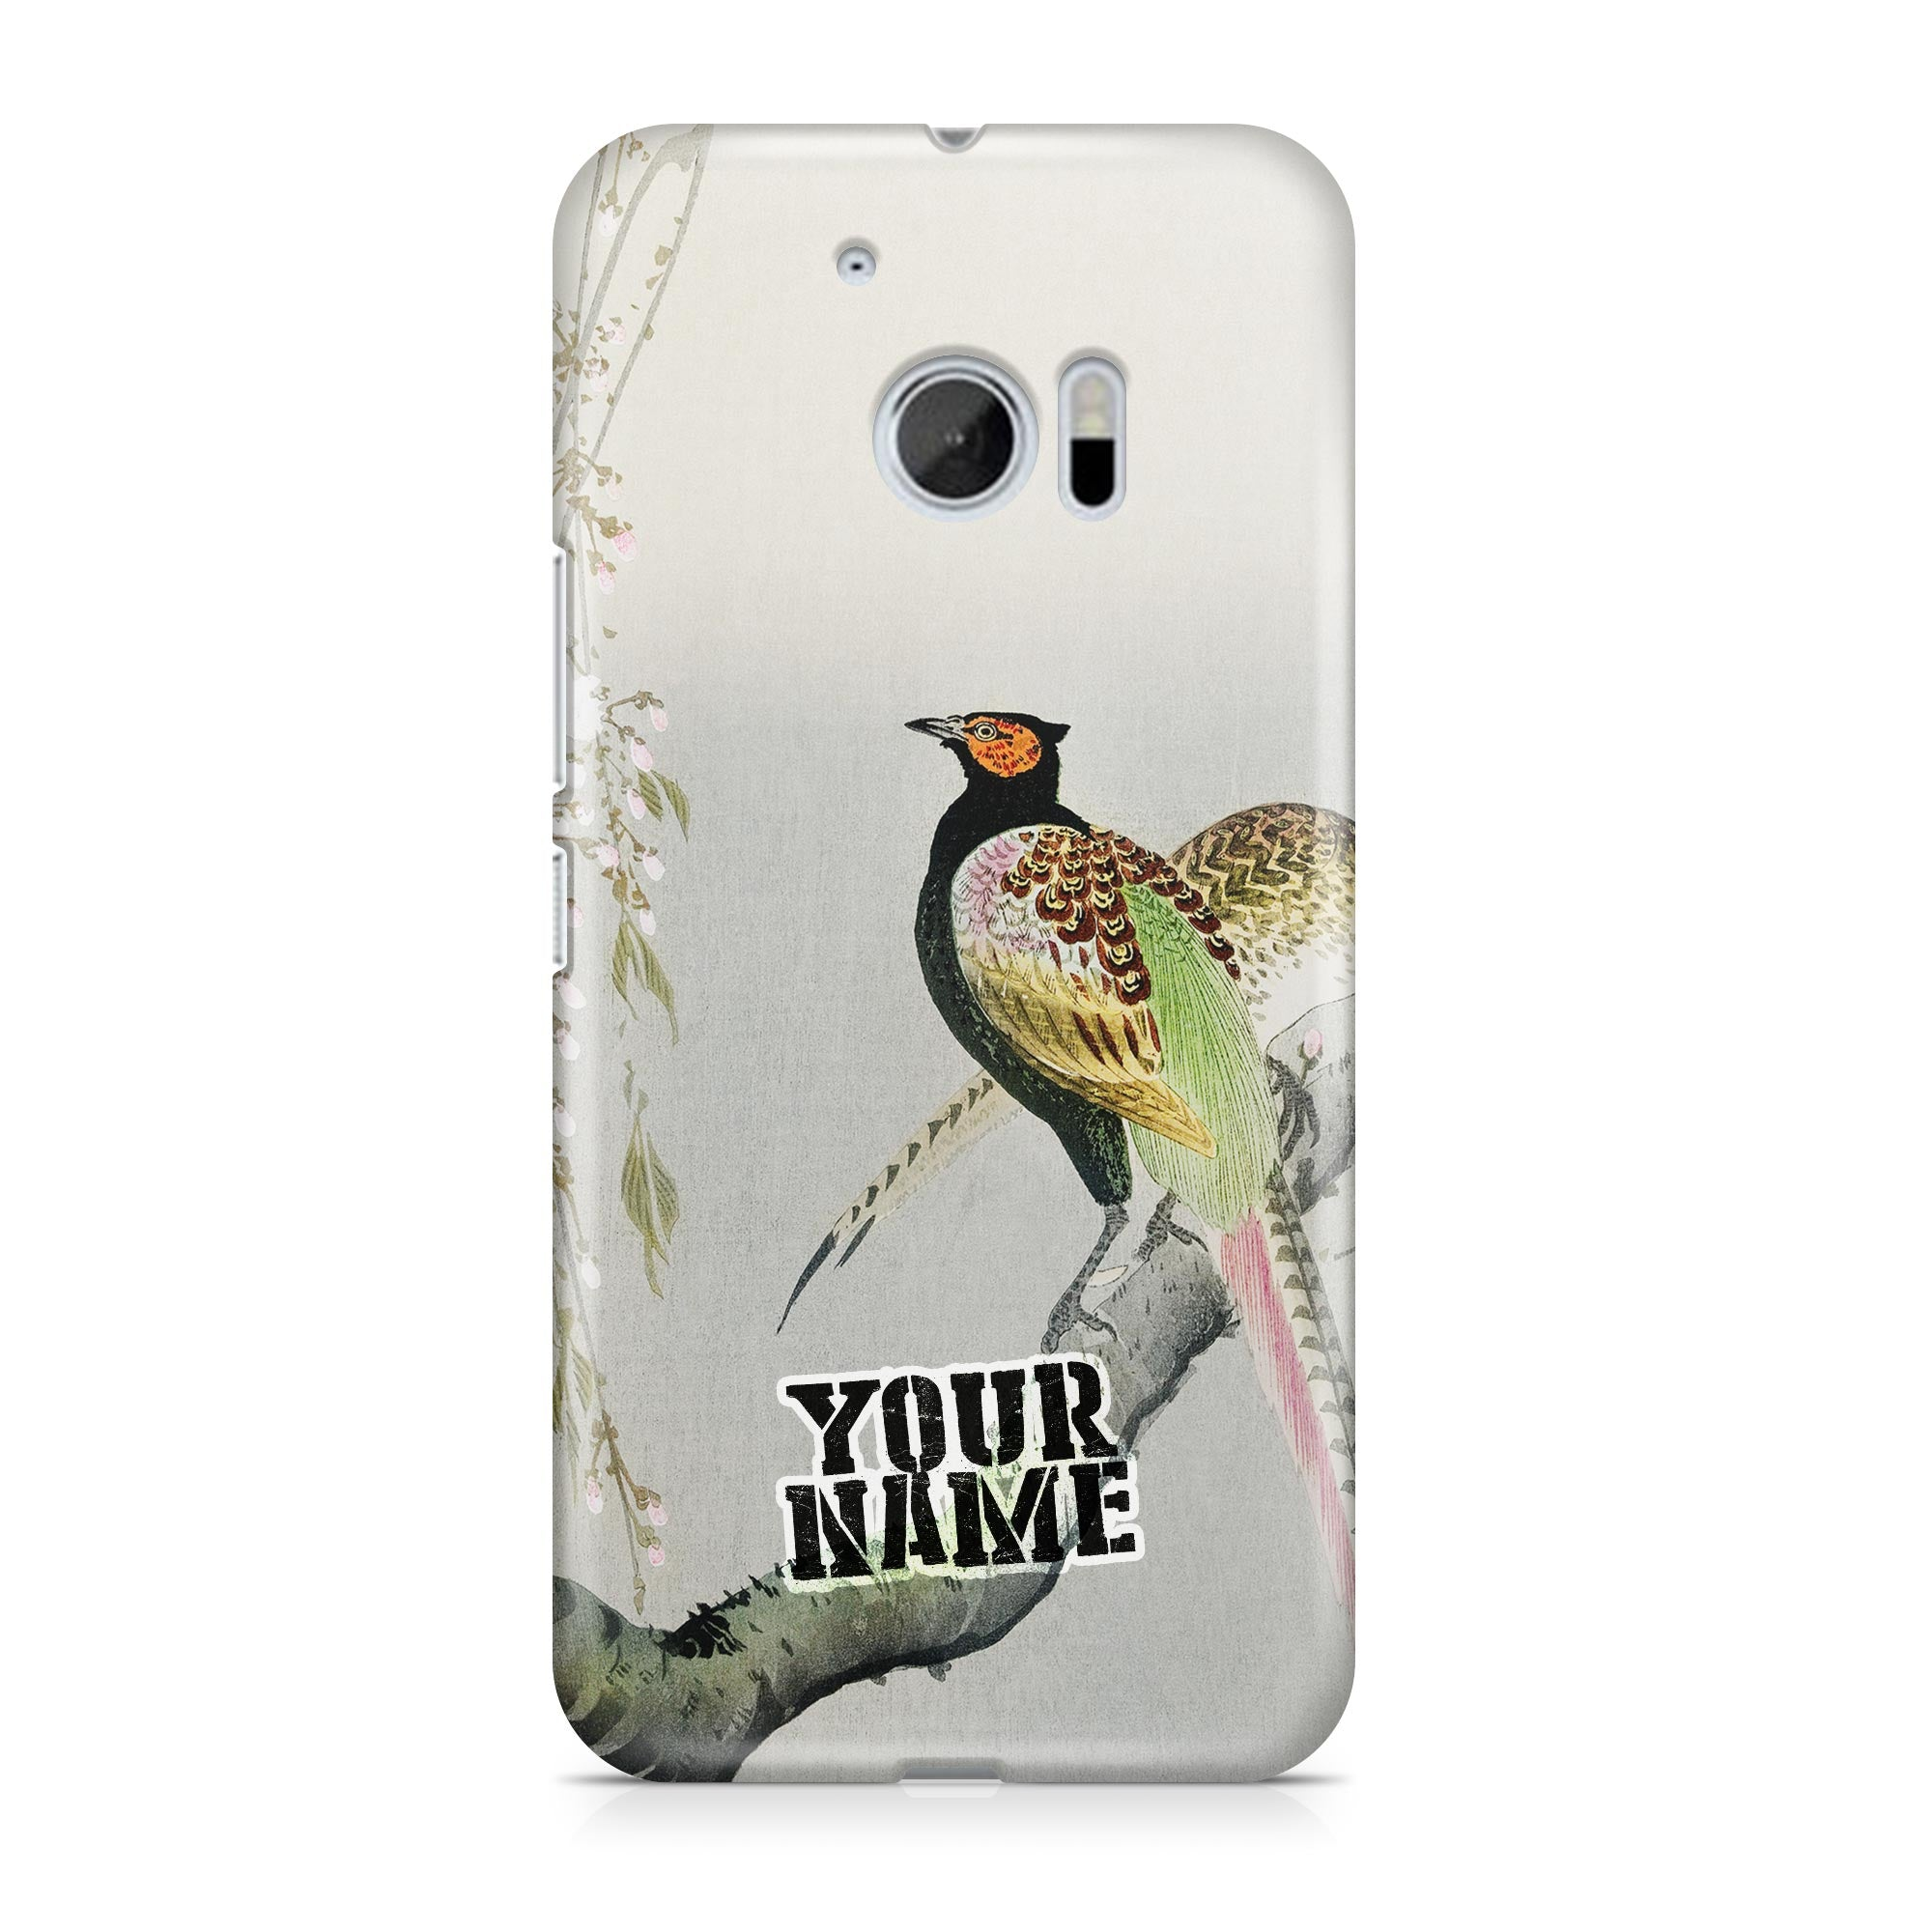 Japanese Peacocks Bird Legendary Phone Cases Cover